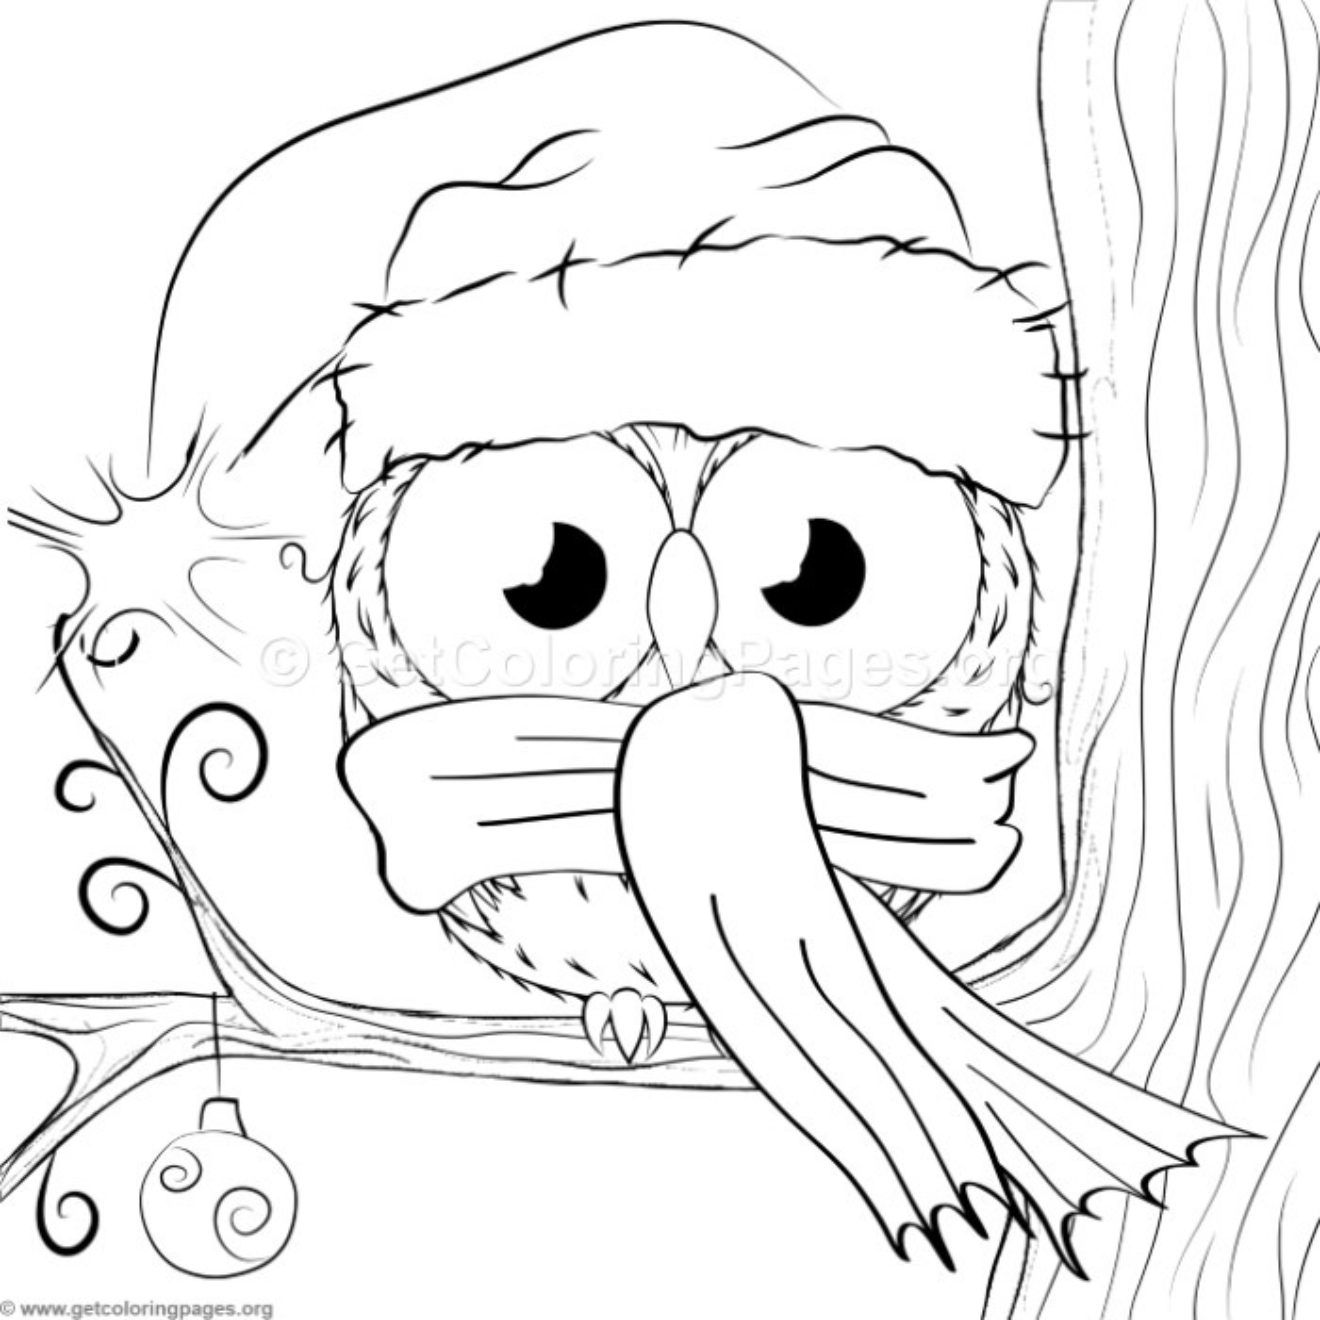 Cute Christmas Owl 1 Coloring Pages Getcoloringpages